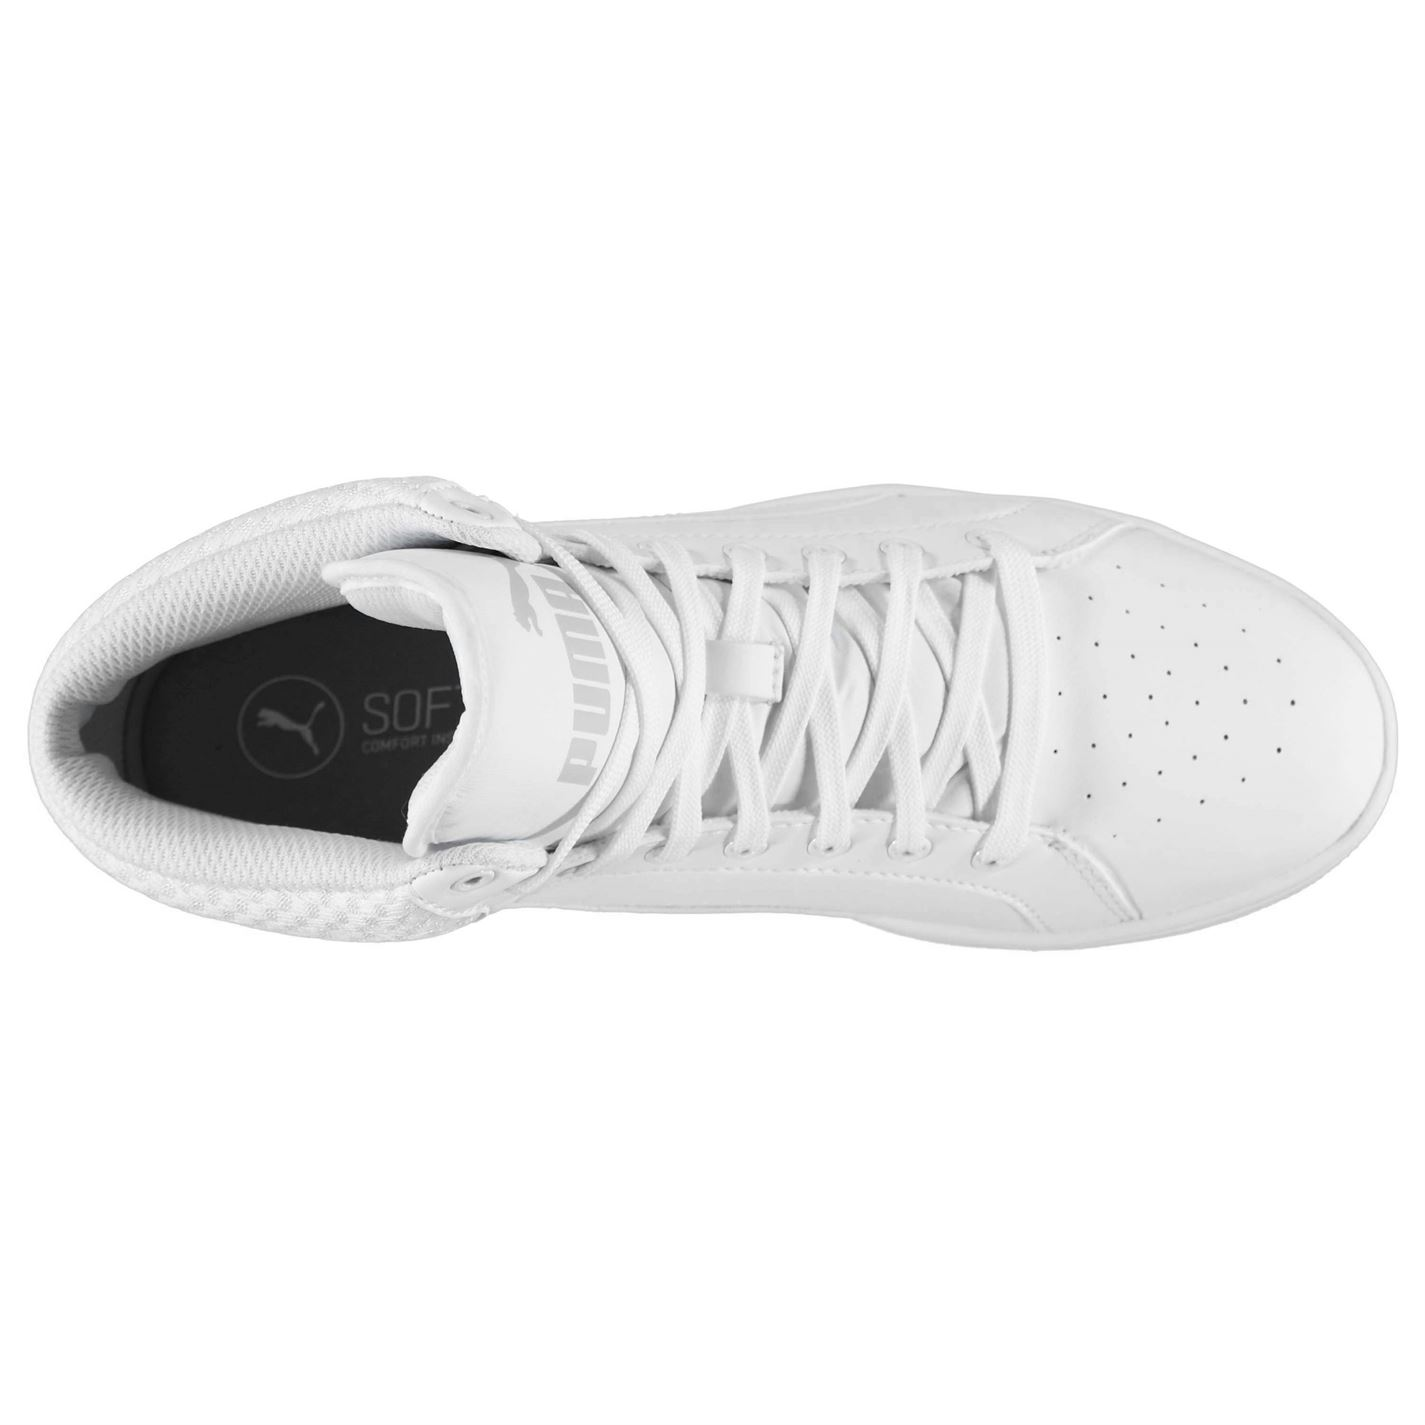 3d5899e9c35ad4 PUMA Shoes Trainers Ladies Hightop Trainers Lace up Ikaz Mid White 6. About  this product. Picture 1 of 4  Picture 2 of 4  Picture 3 of 4  Picture 4 of 4